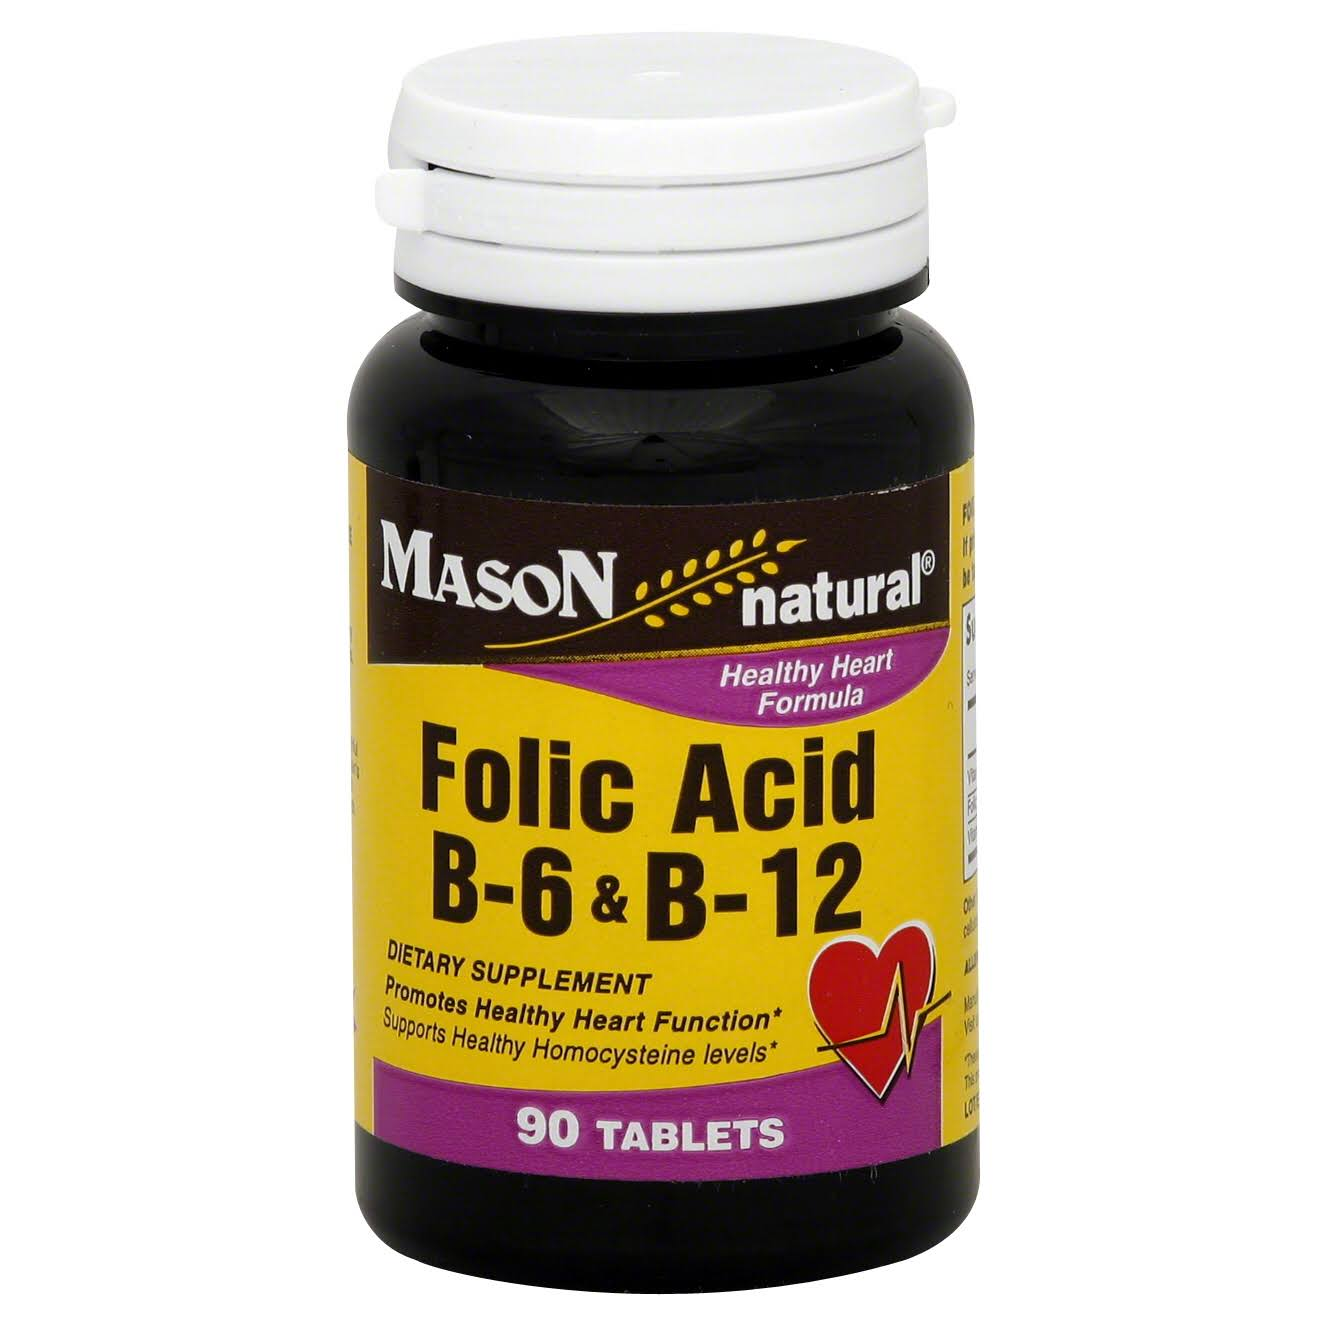 Mason Natural Folic Acid B6 and B12 Dietary Supplement - 90ct